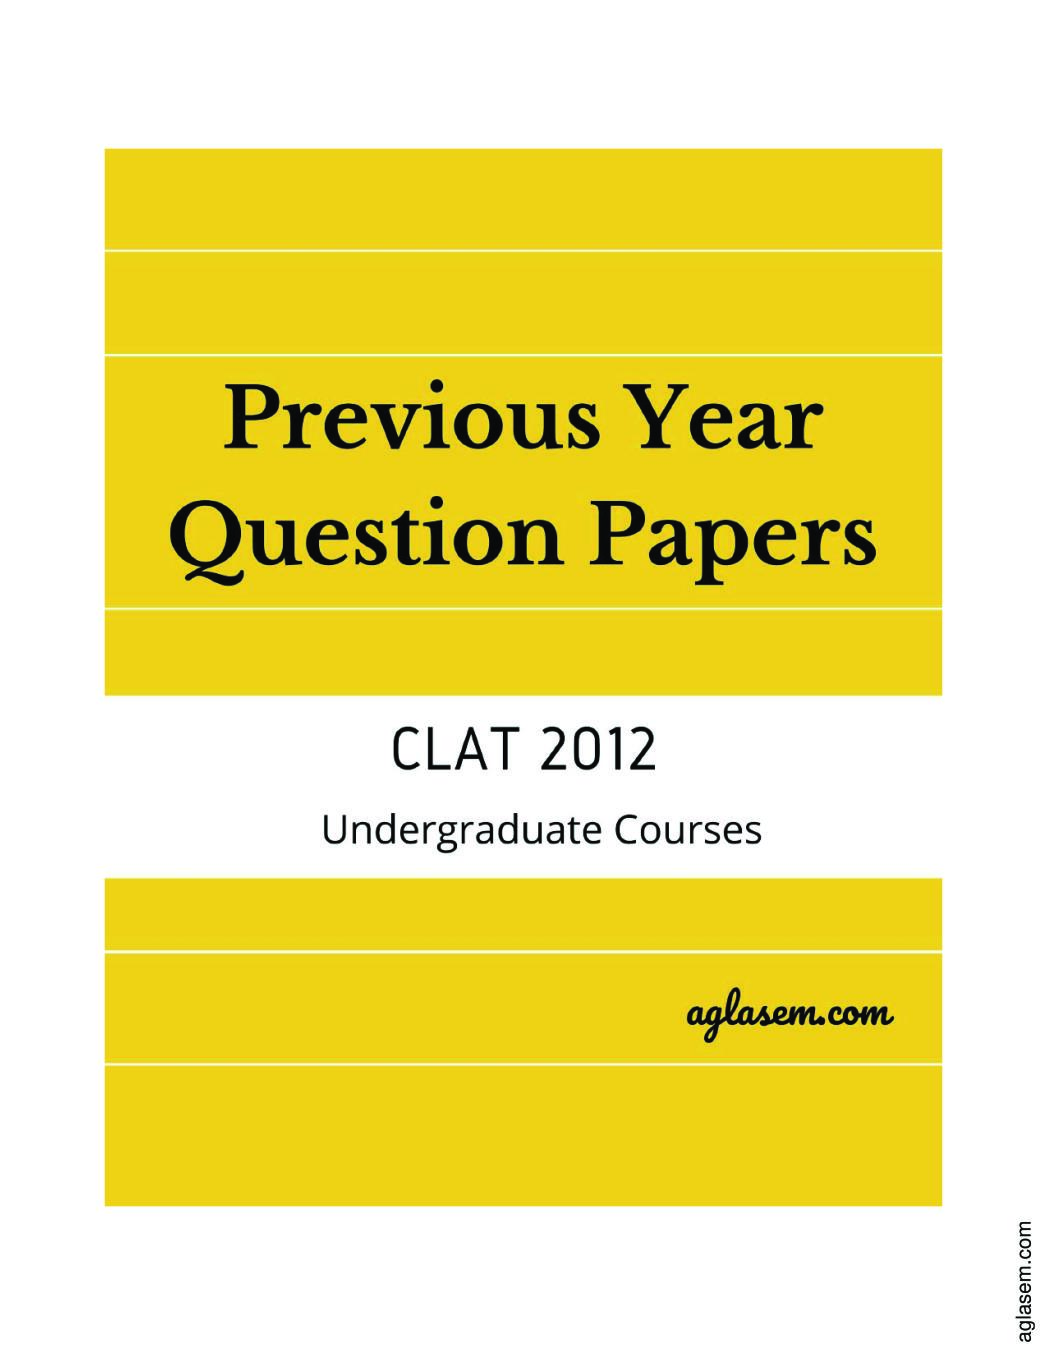 CLAT 2012 Question Paper